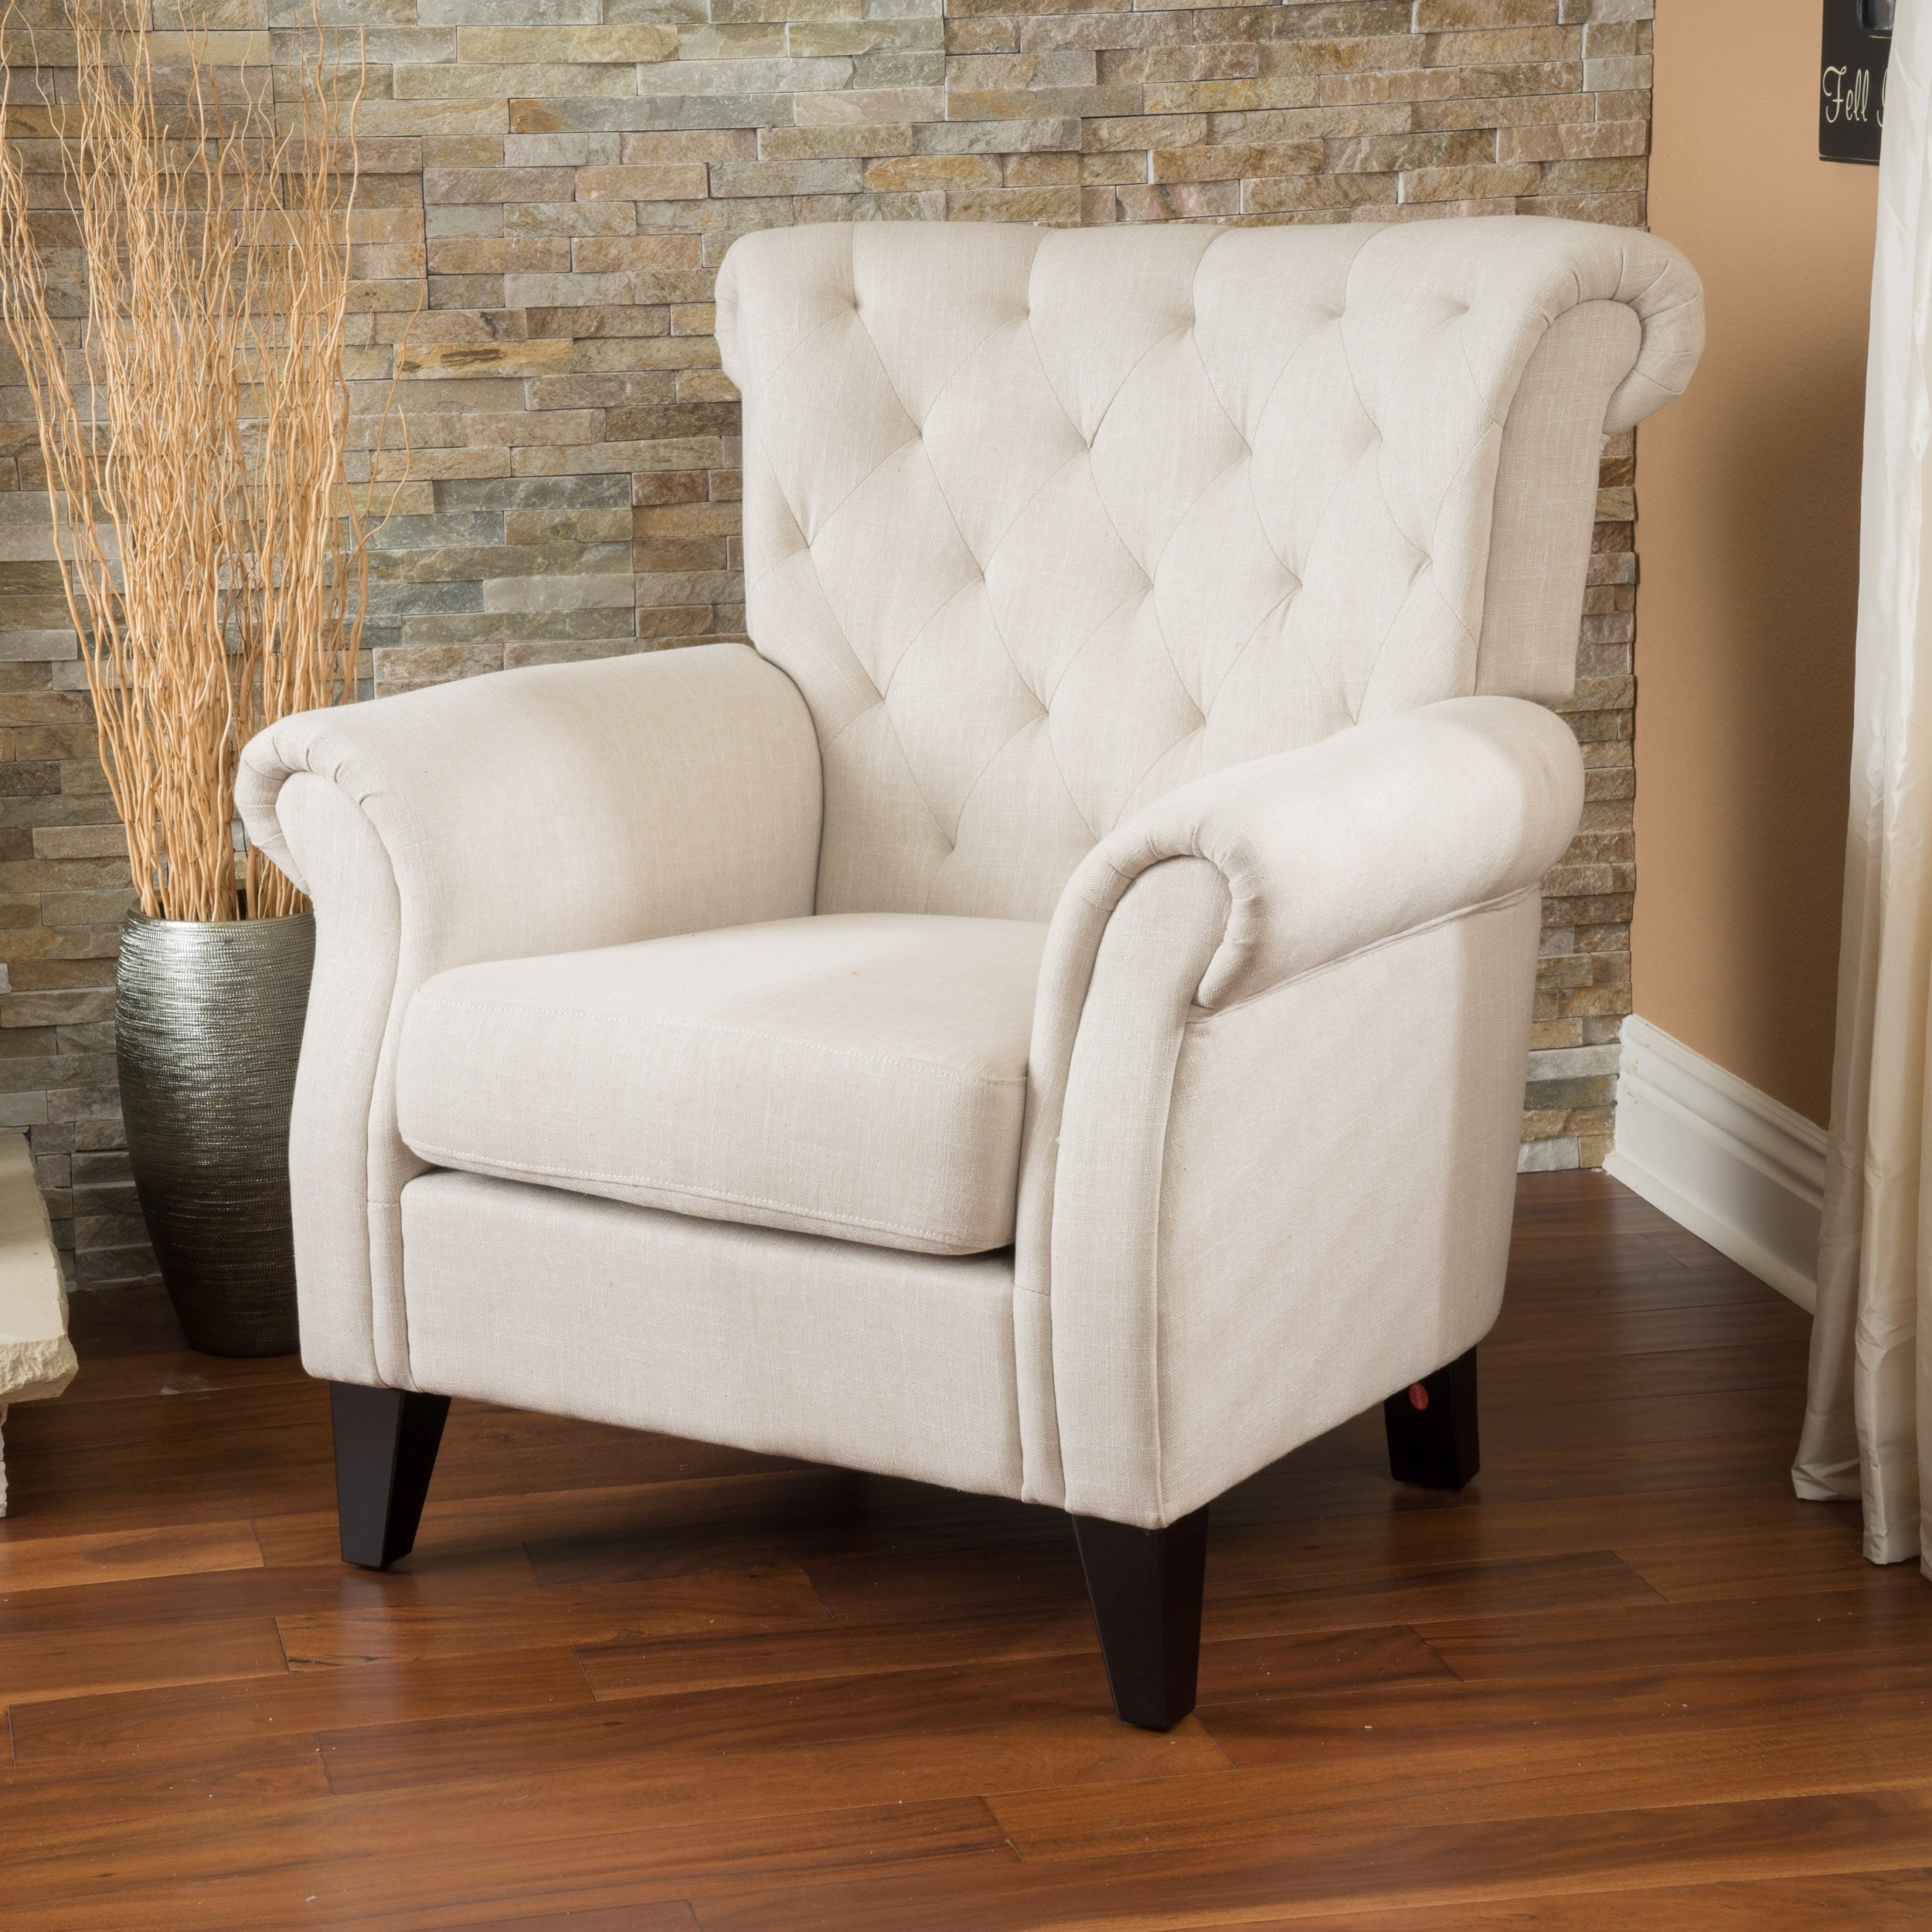 christopher knight club chair bedroom and a half buy living room chairs online at overstock our best